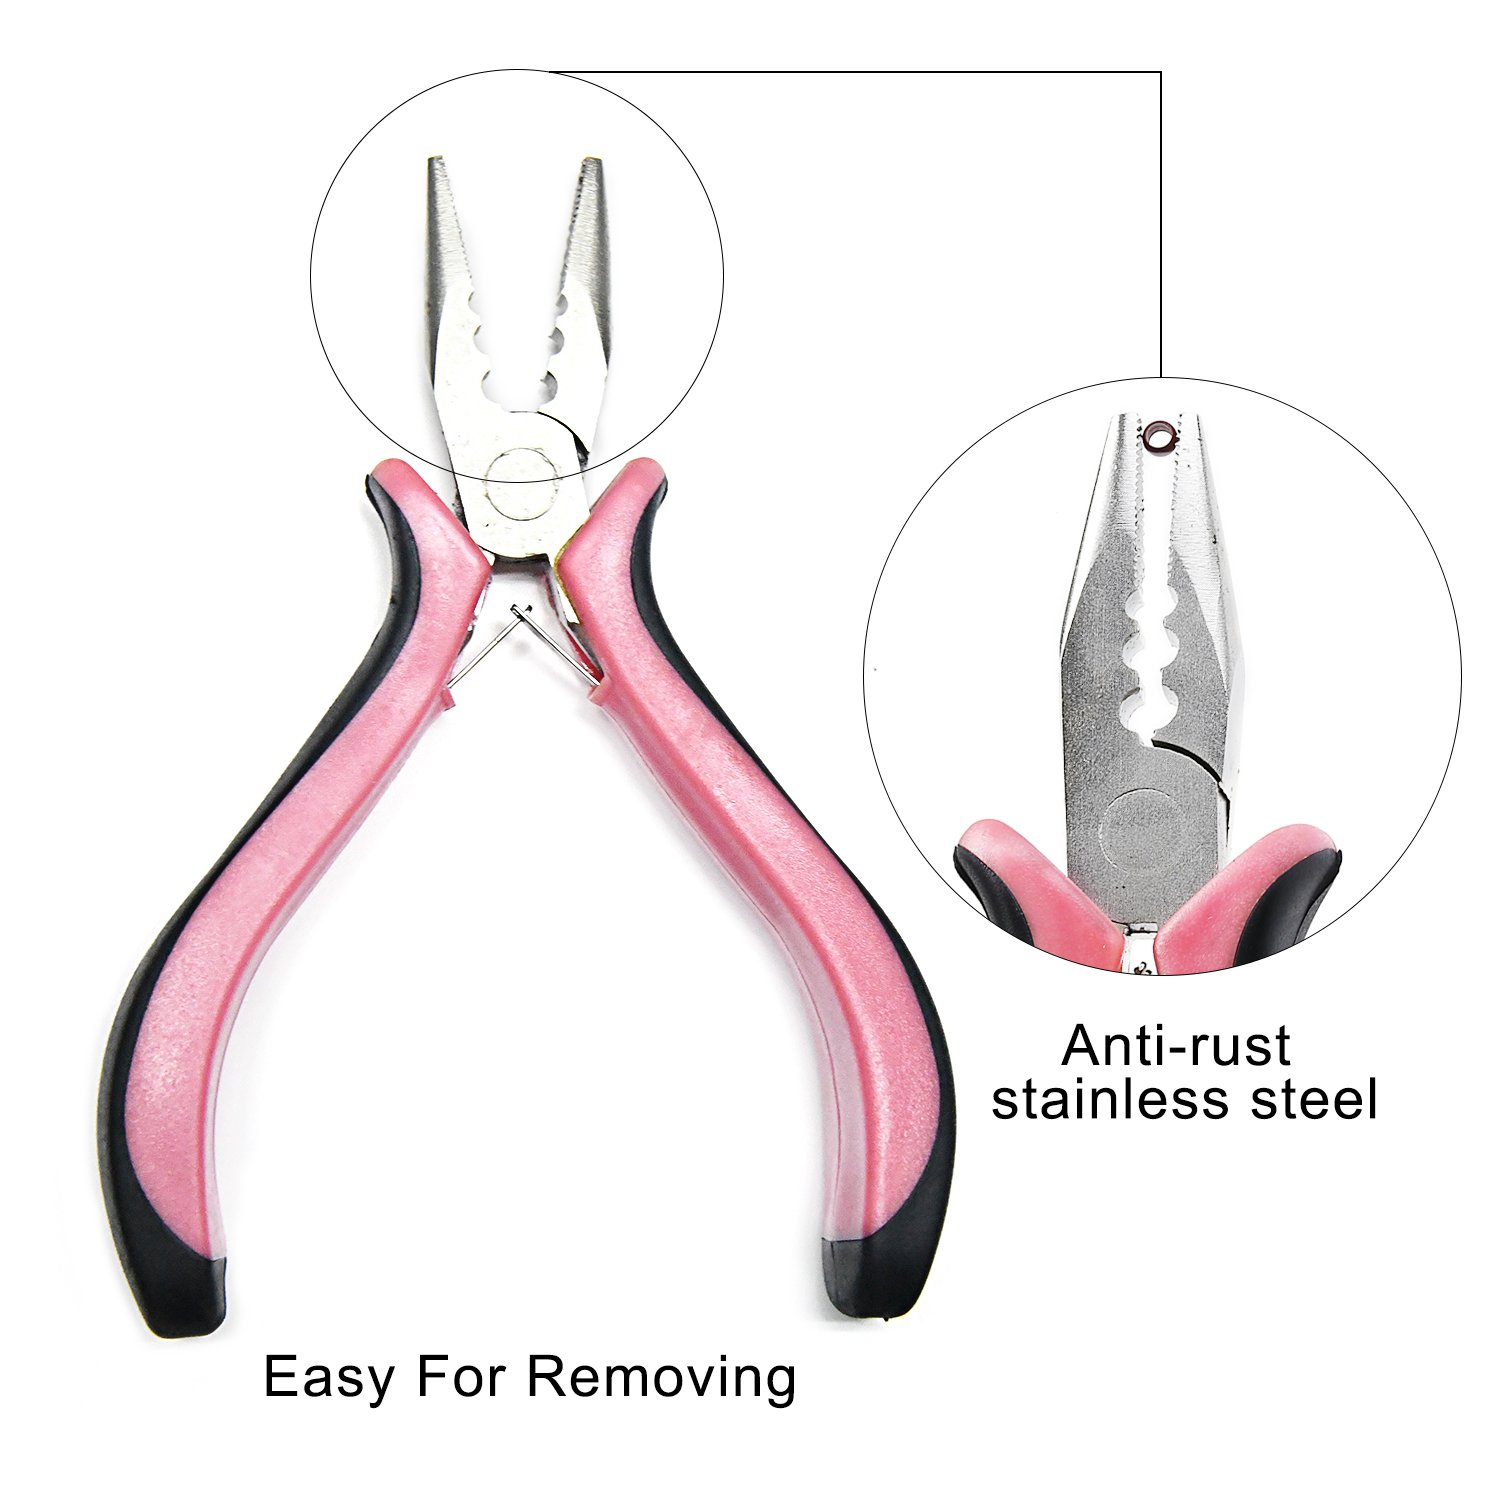 Neitsi 3 Holes Mini Plier For Micro Nano Ring Hair Extensions opener and Removal Tool